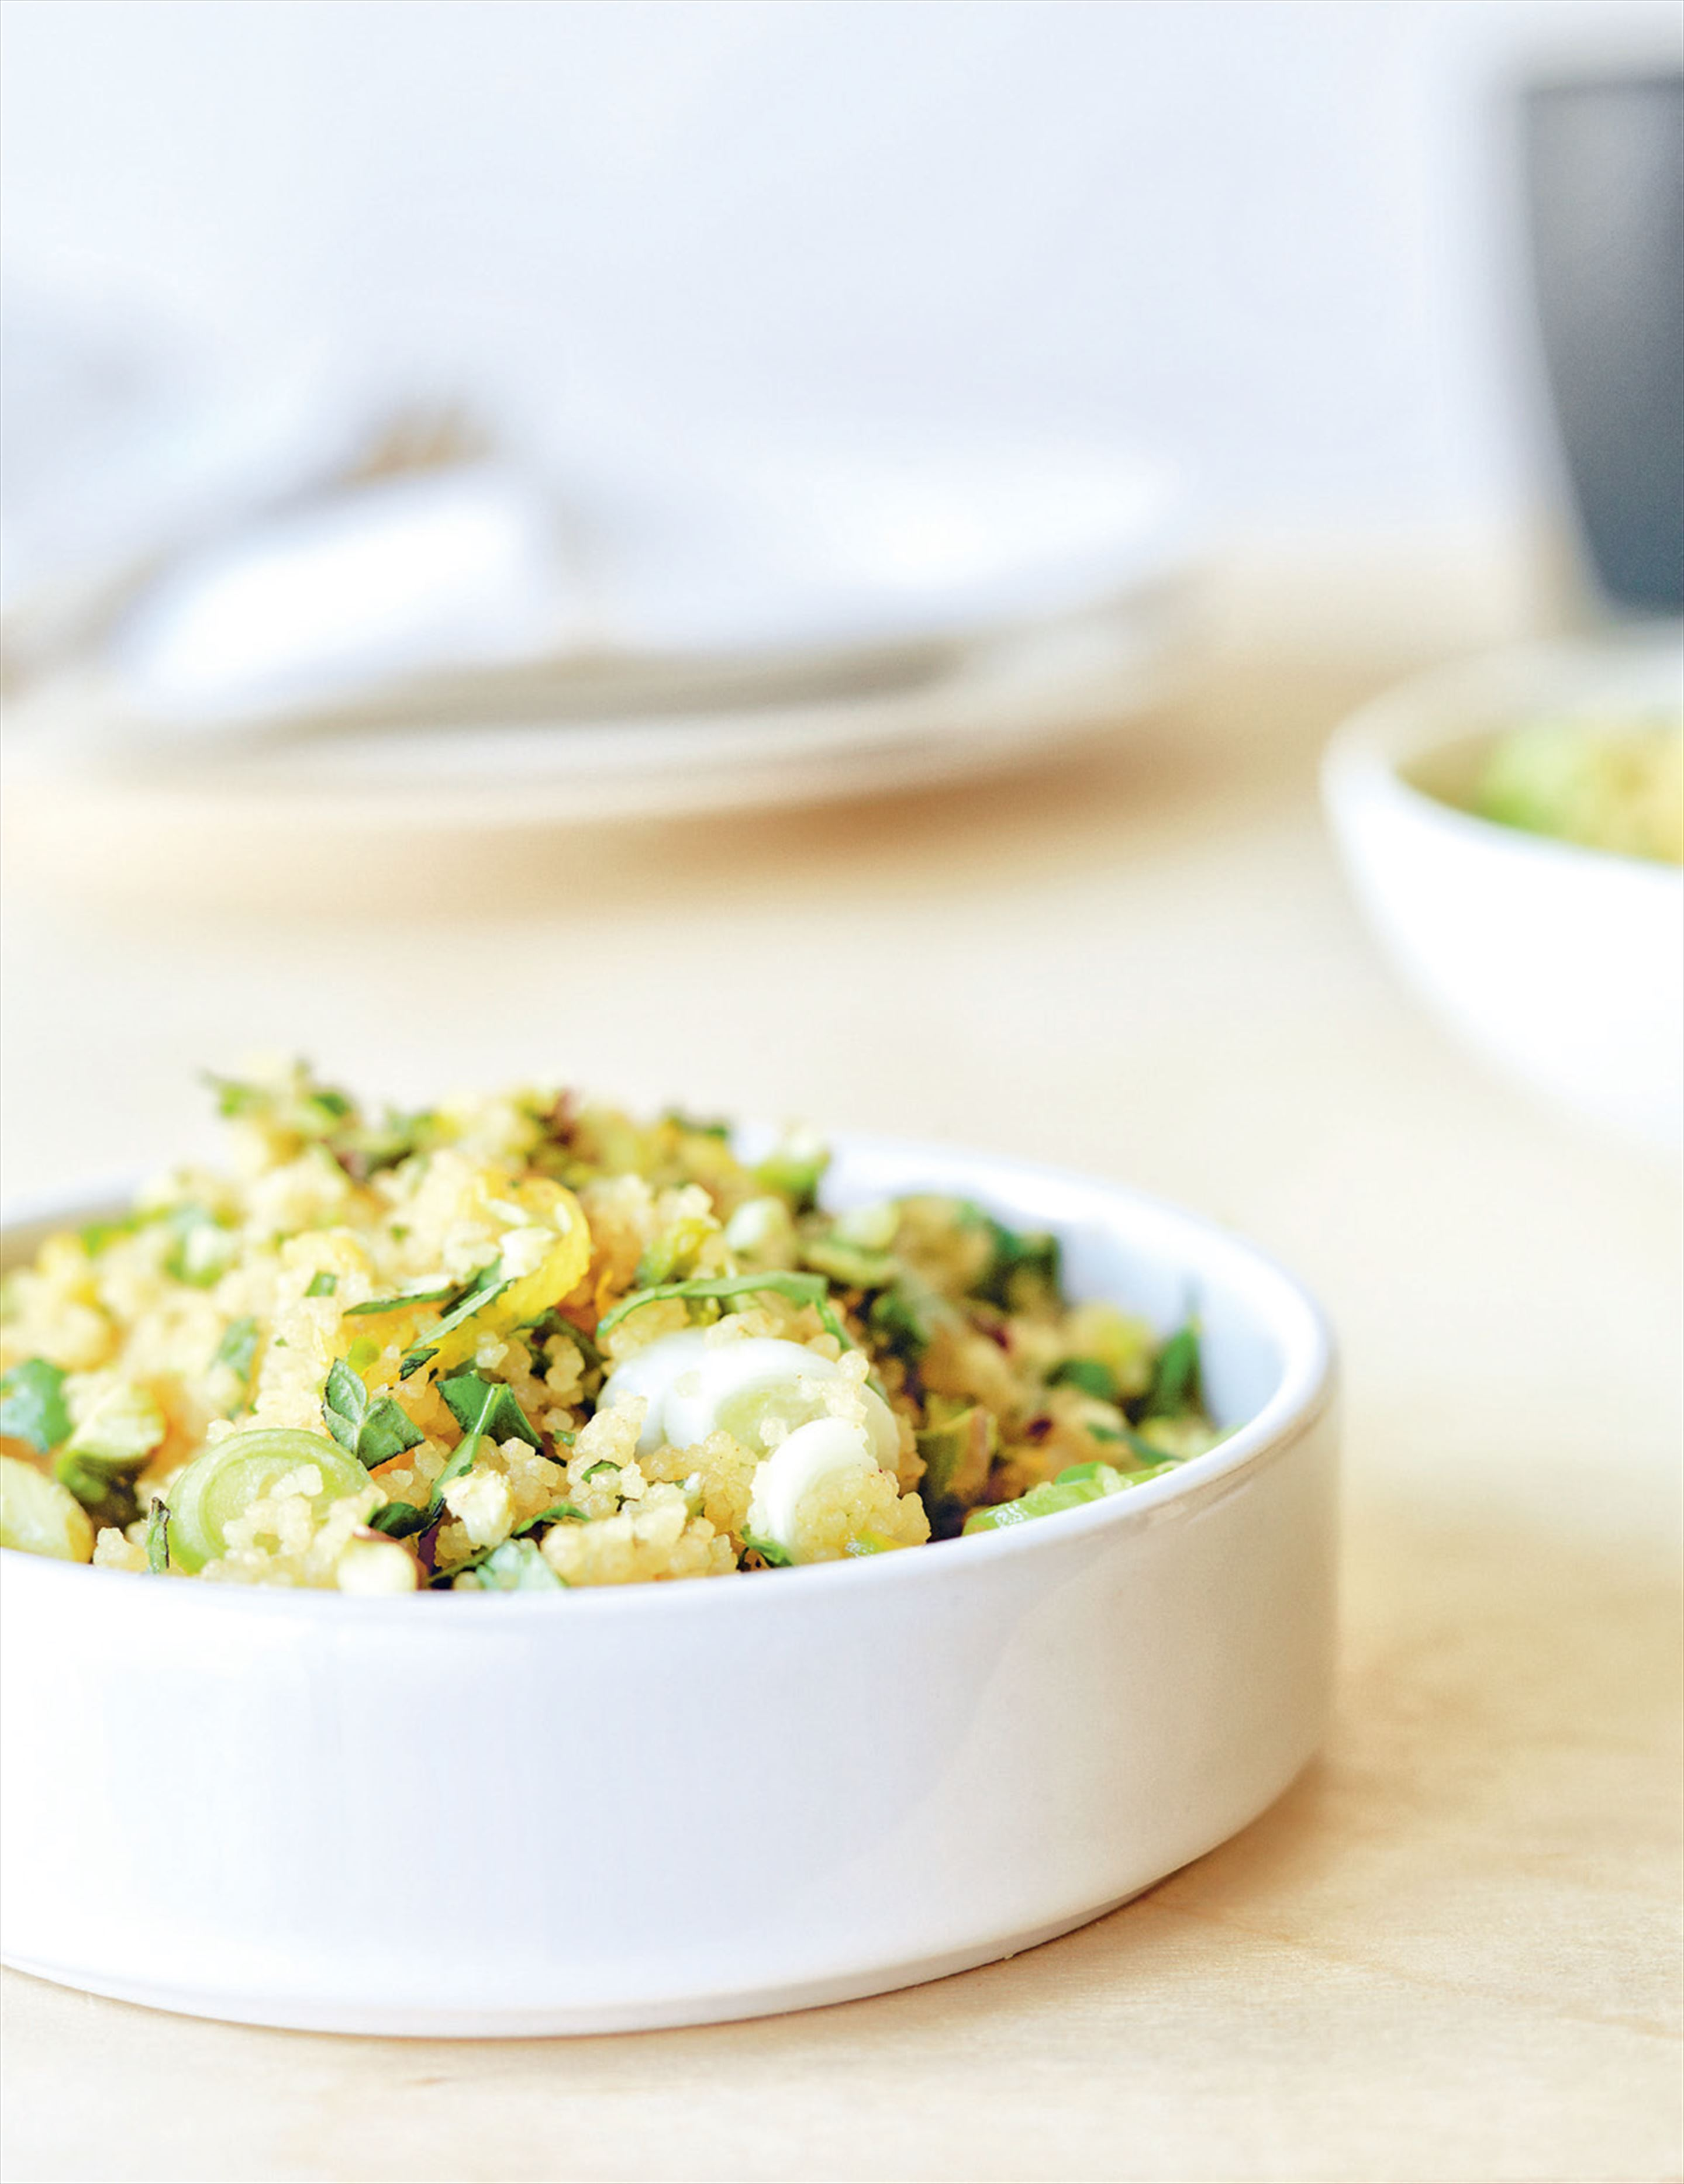 Spring couscous with herbs, lemon & pistachios